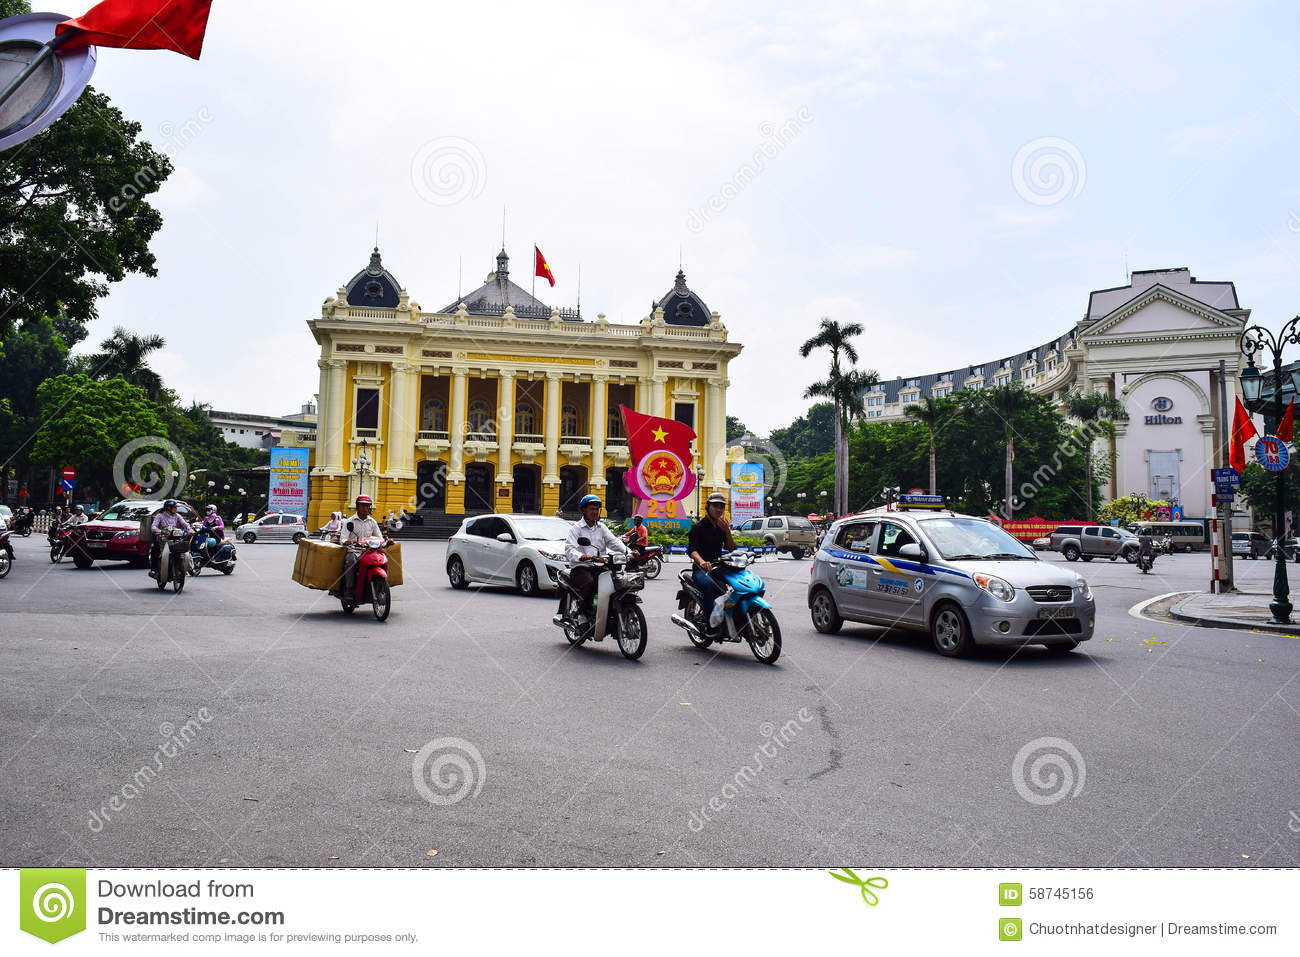 Opera House of Hanoi. Ha Noi is the capital and the second largest city in Vietnam